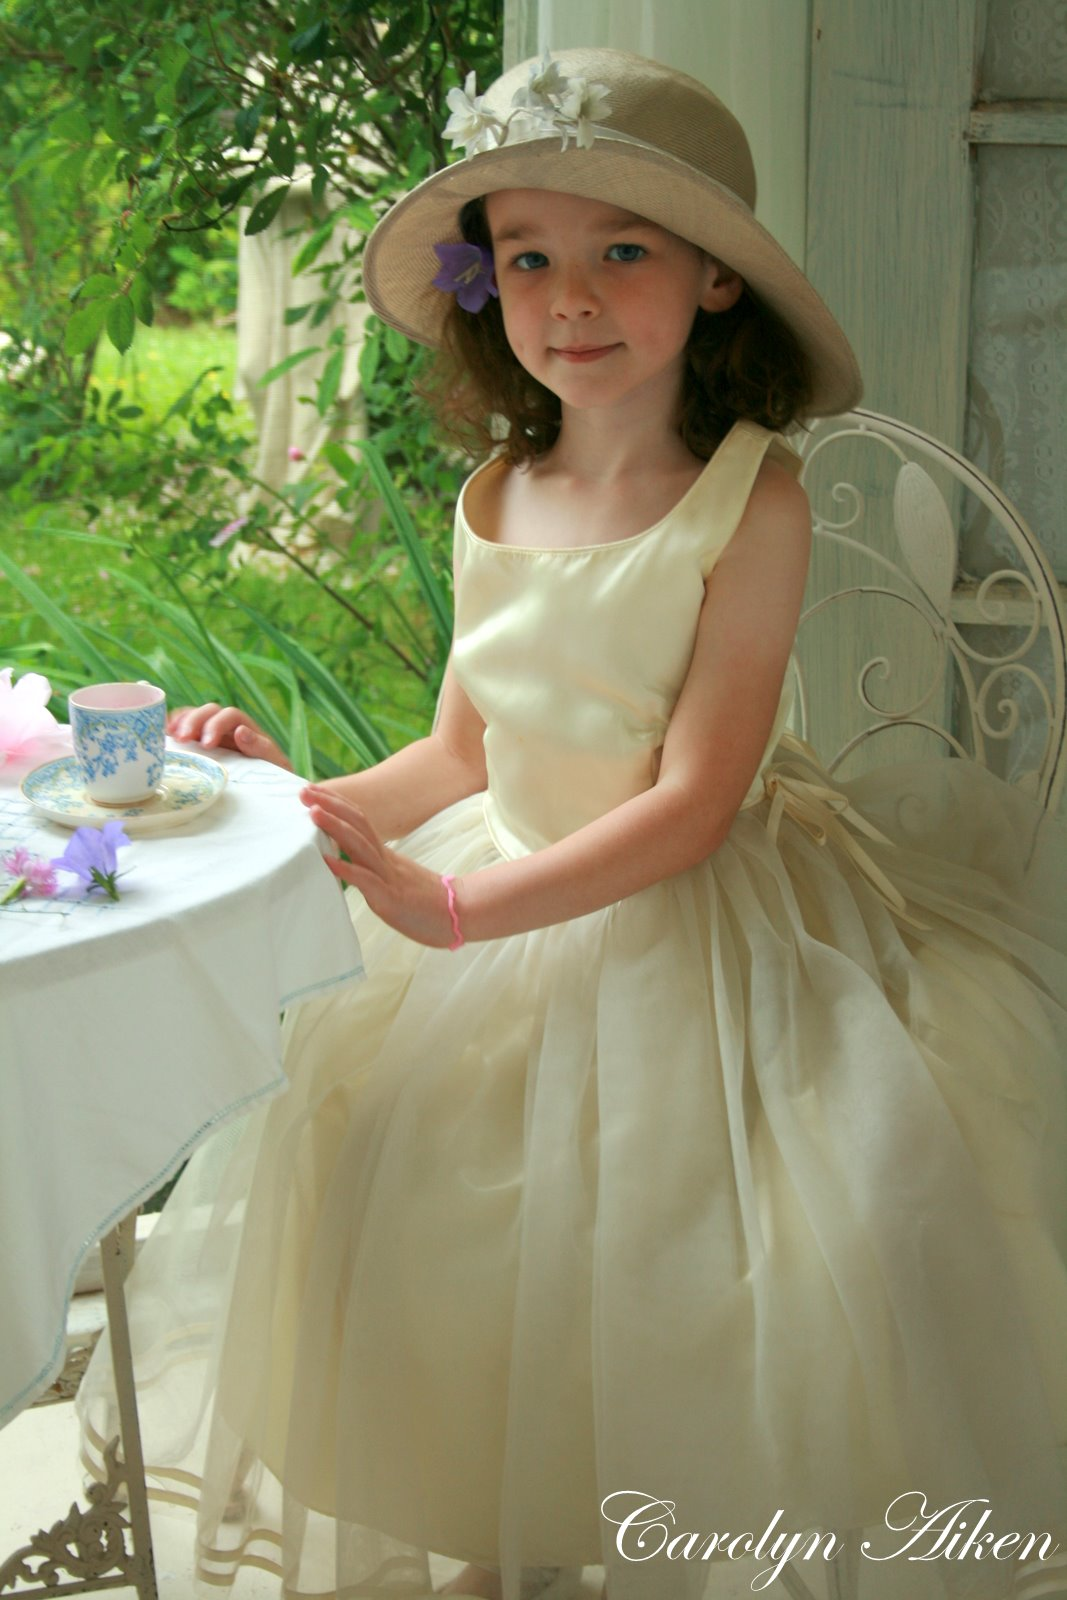 Tea Party Attire, Tea Party Outfits, Party Outfits For Women, Tea Party Hats, Party Wear, High Tea Outfit, High Tea Dress, High Tea Parties, Garden Tea Parties, Party Clothes Find this Pin and more on Top of the World Style - Linkup party by High Latitude Style.